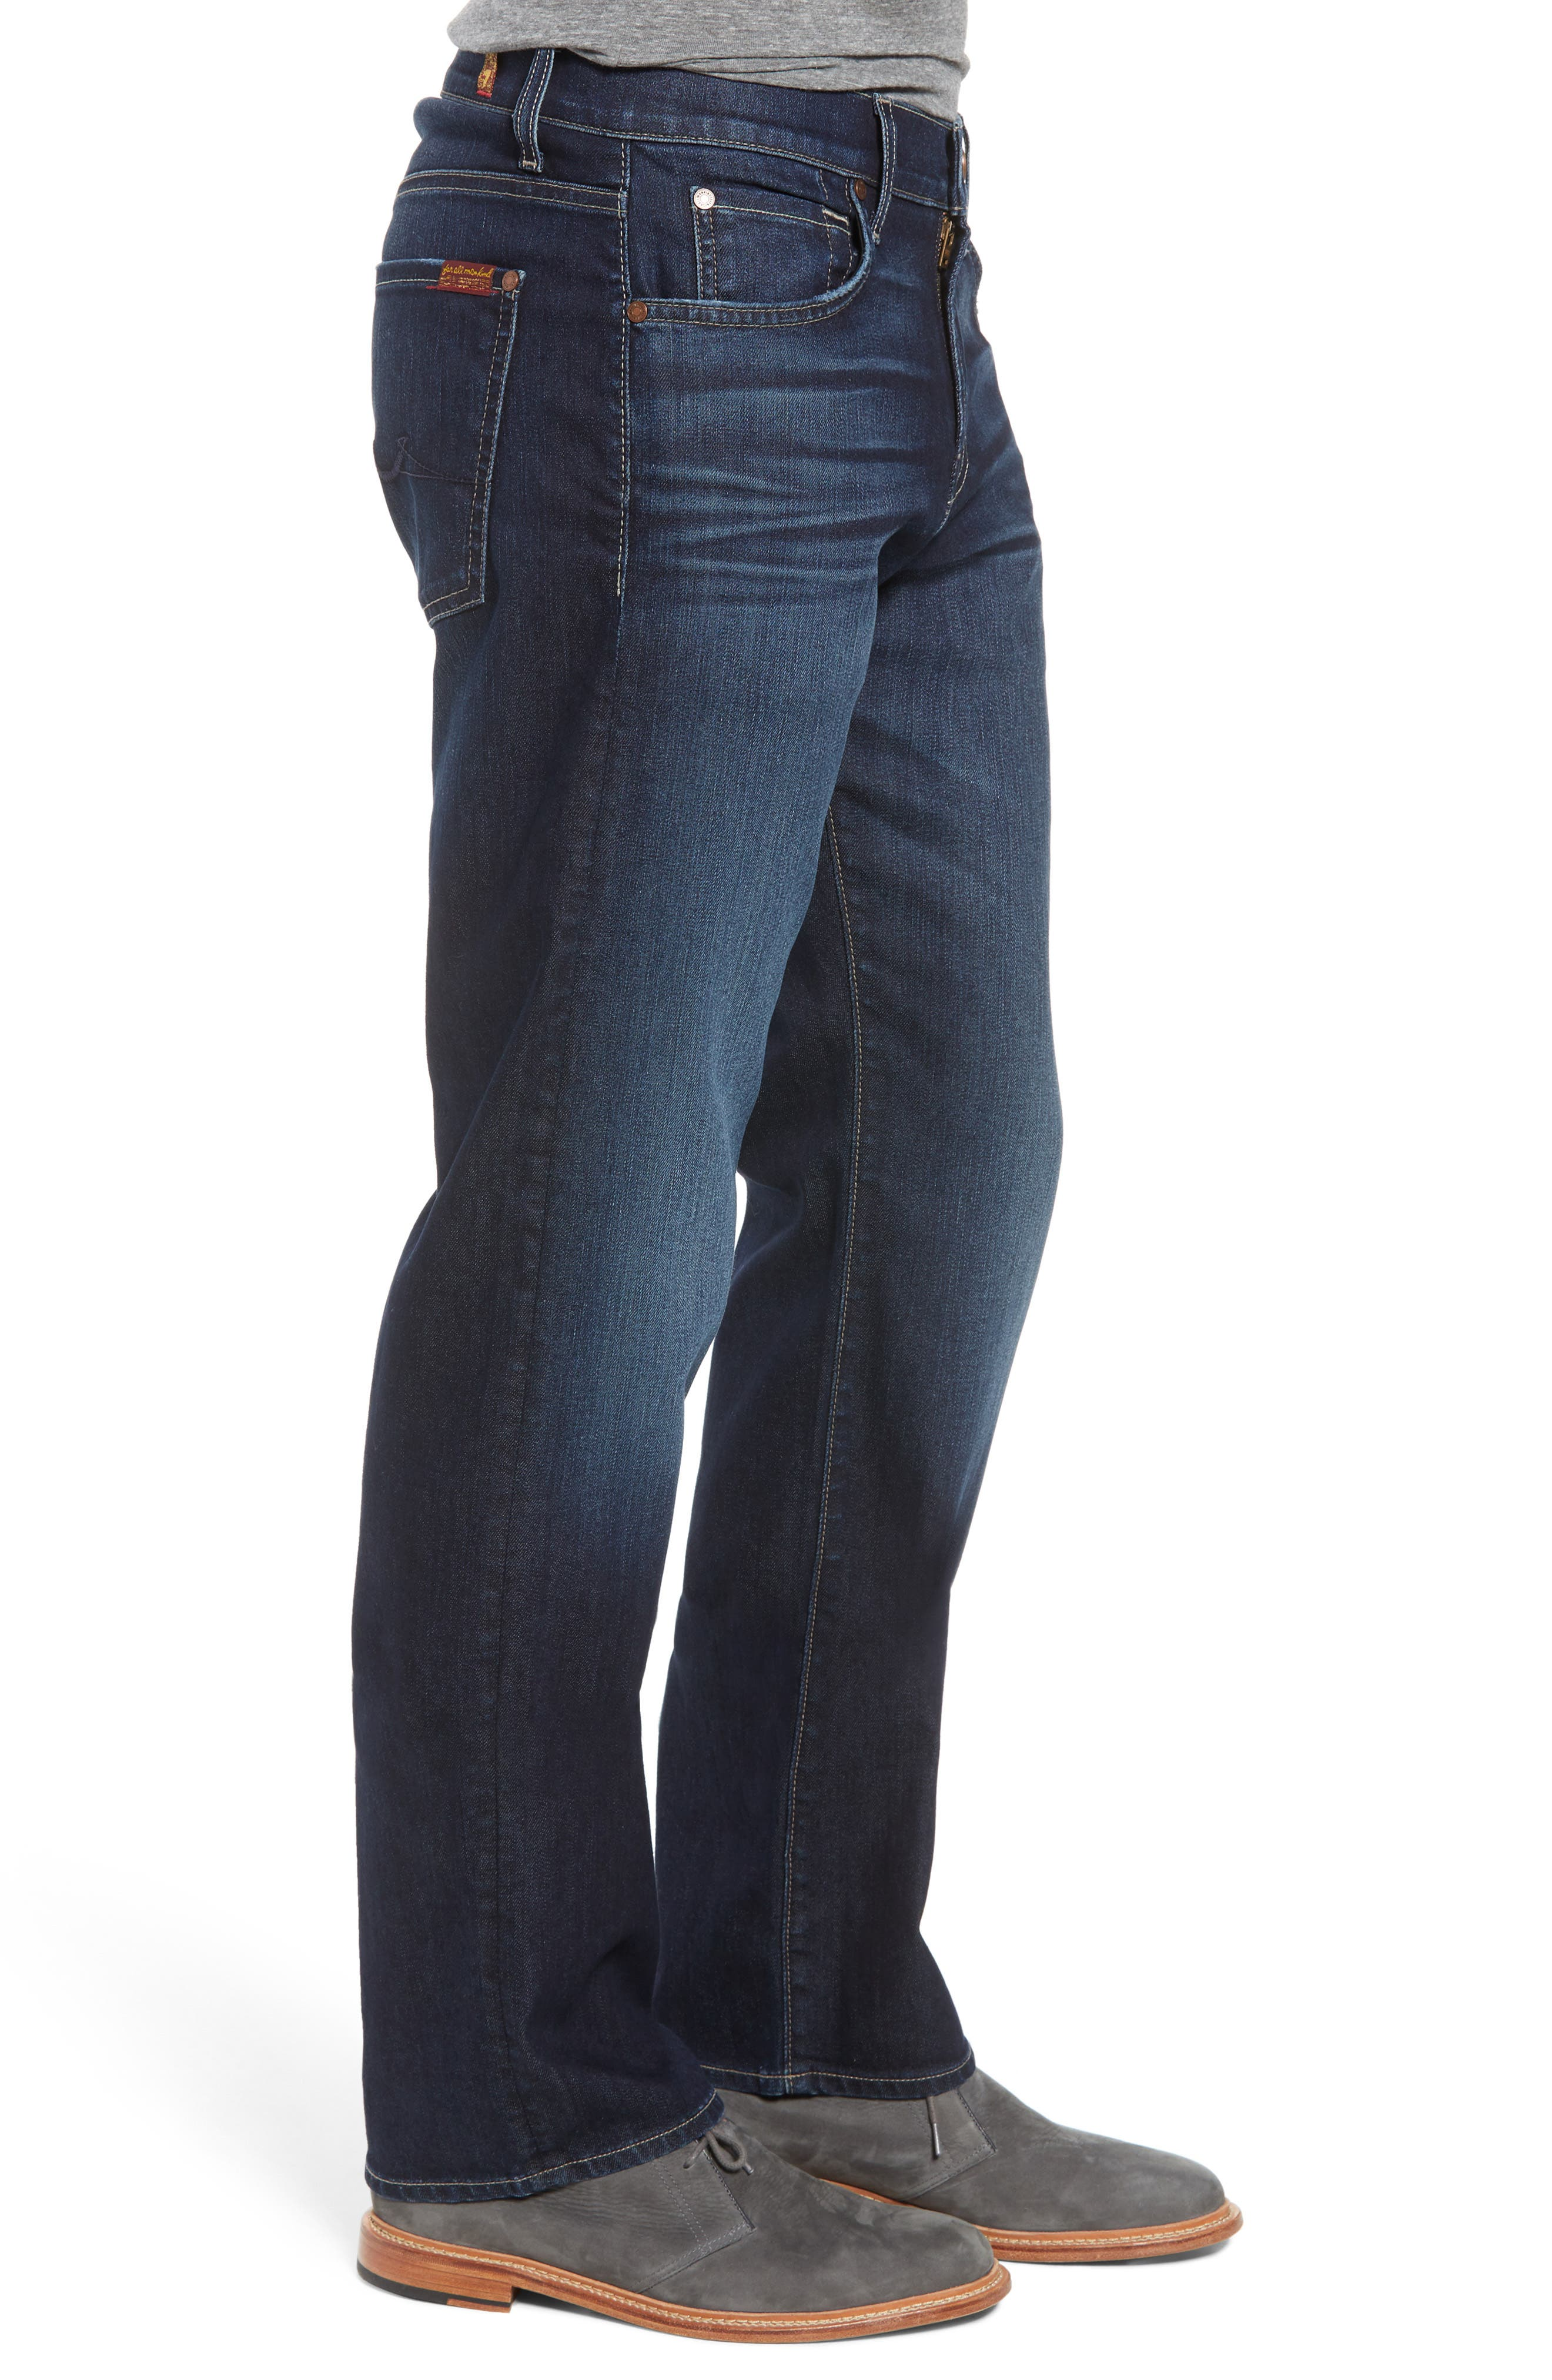 Airweft Austyn Relaxed Straight Leg Jeans,                             Alternate thumbnail 3, color,                             Concierge